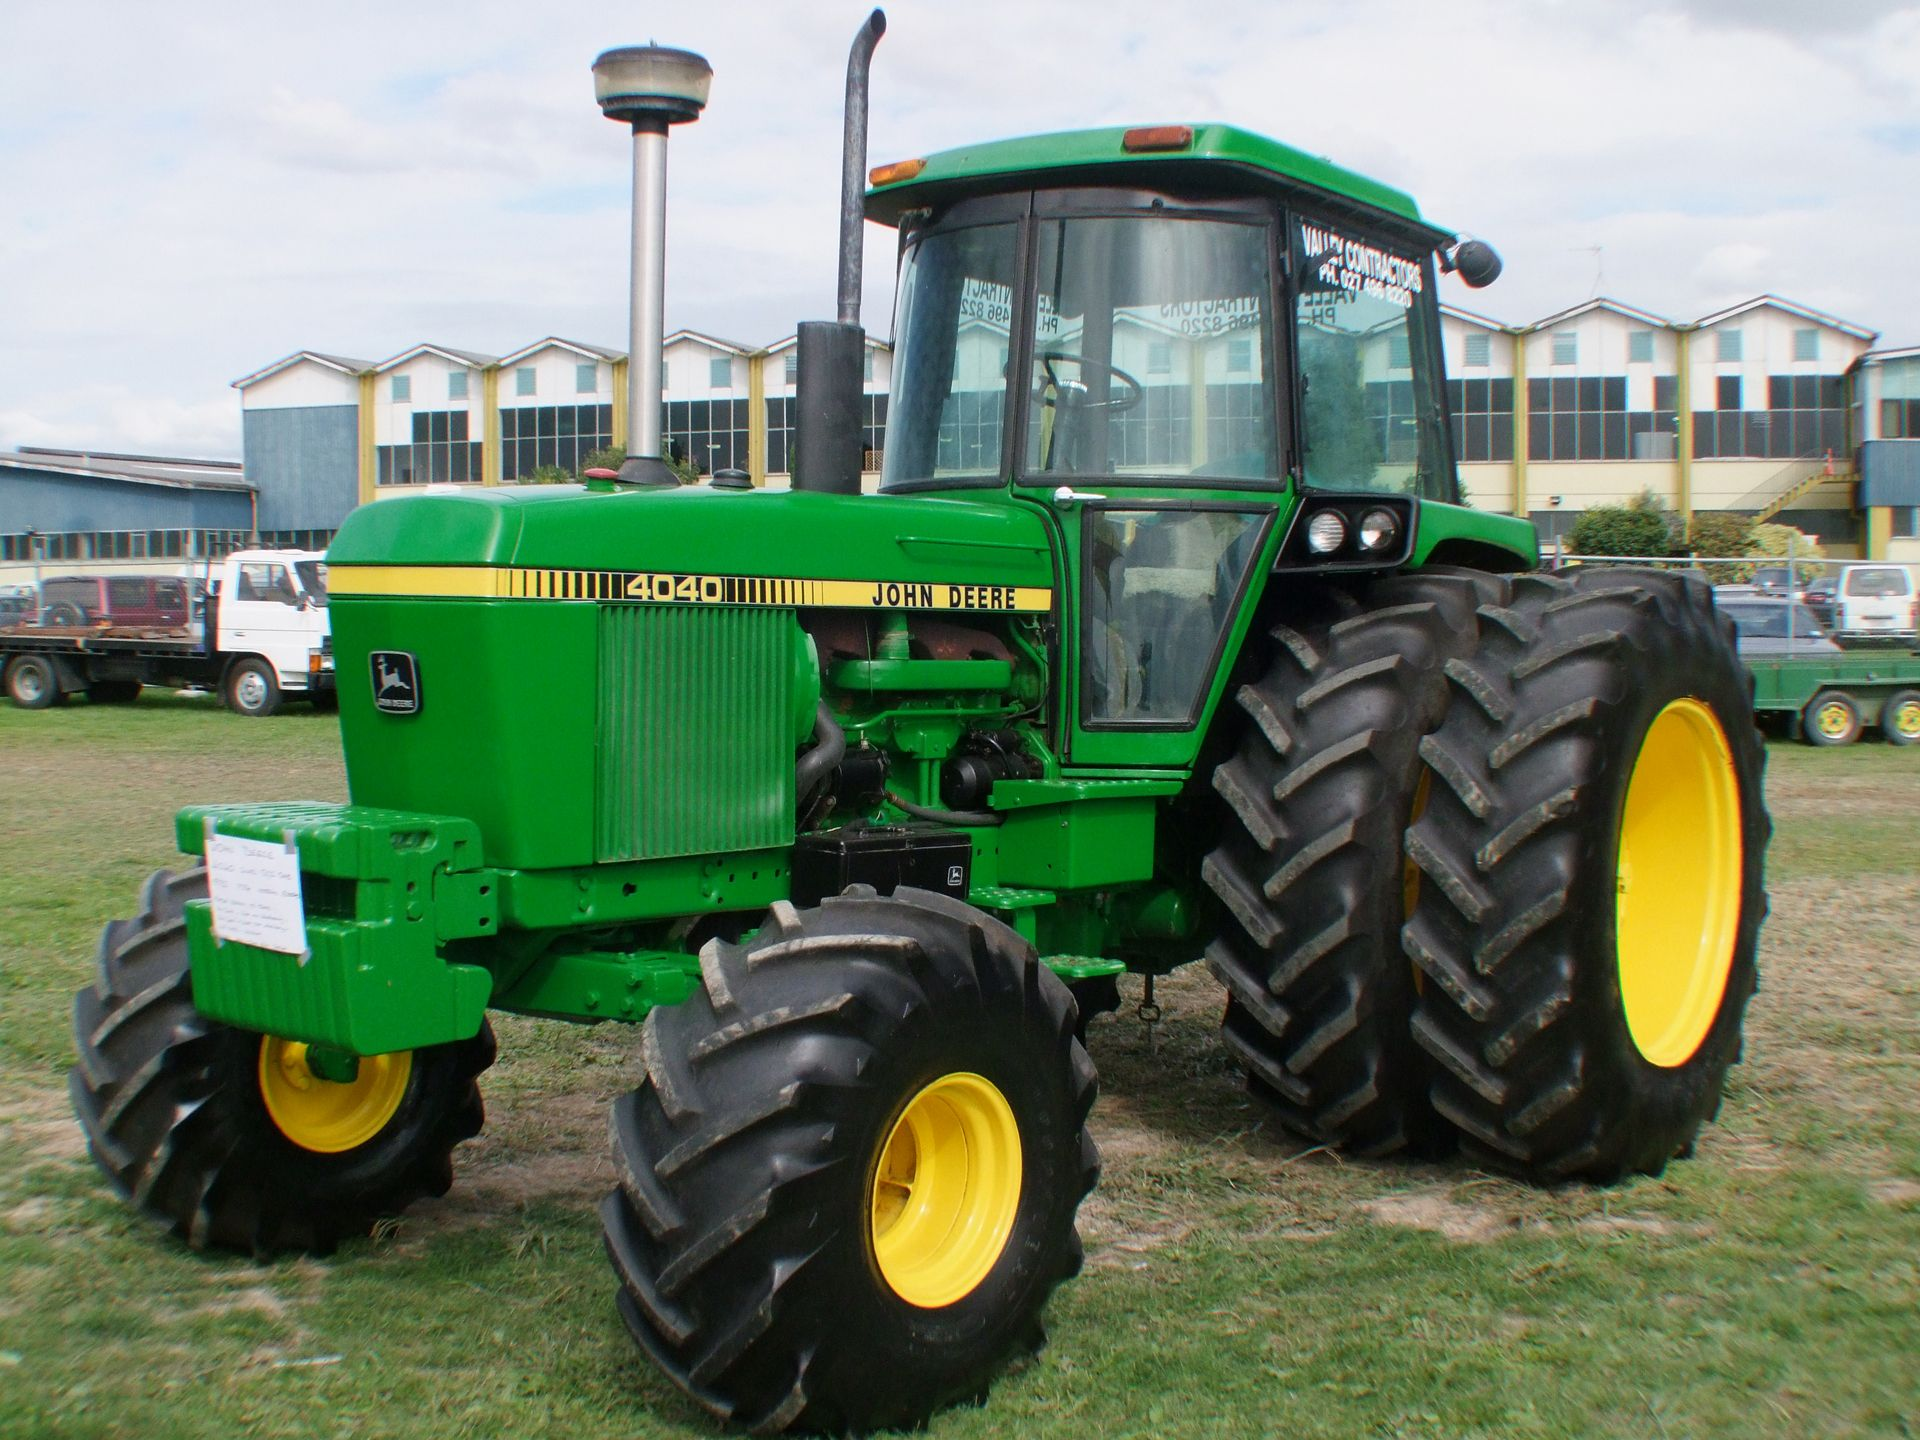 Deere Gator Wiring Diagram Along With 8n Ford Tractor Engine Diagram